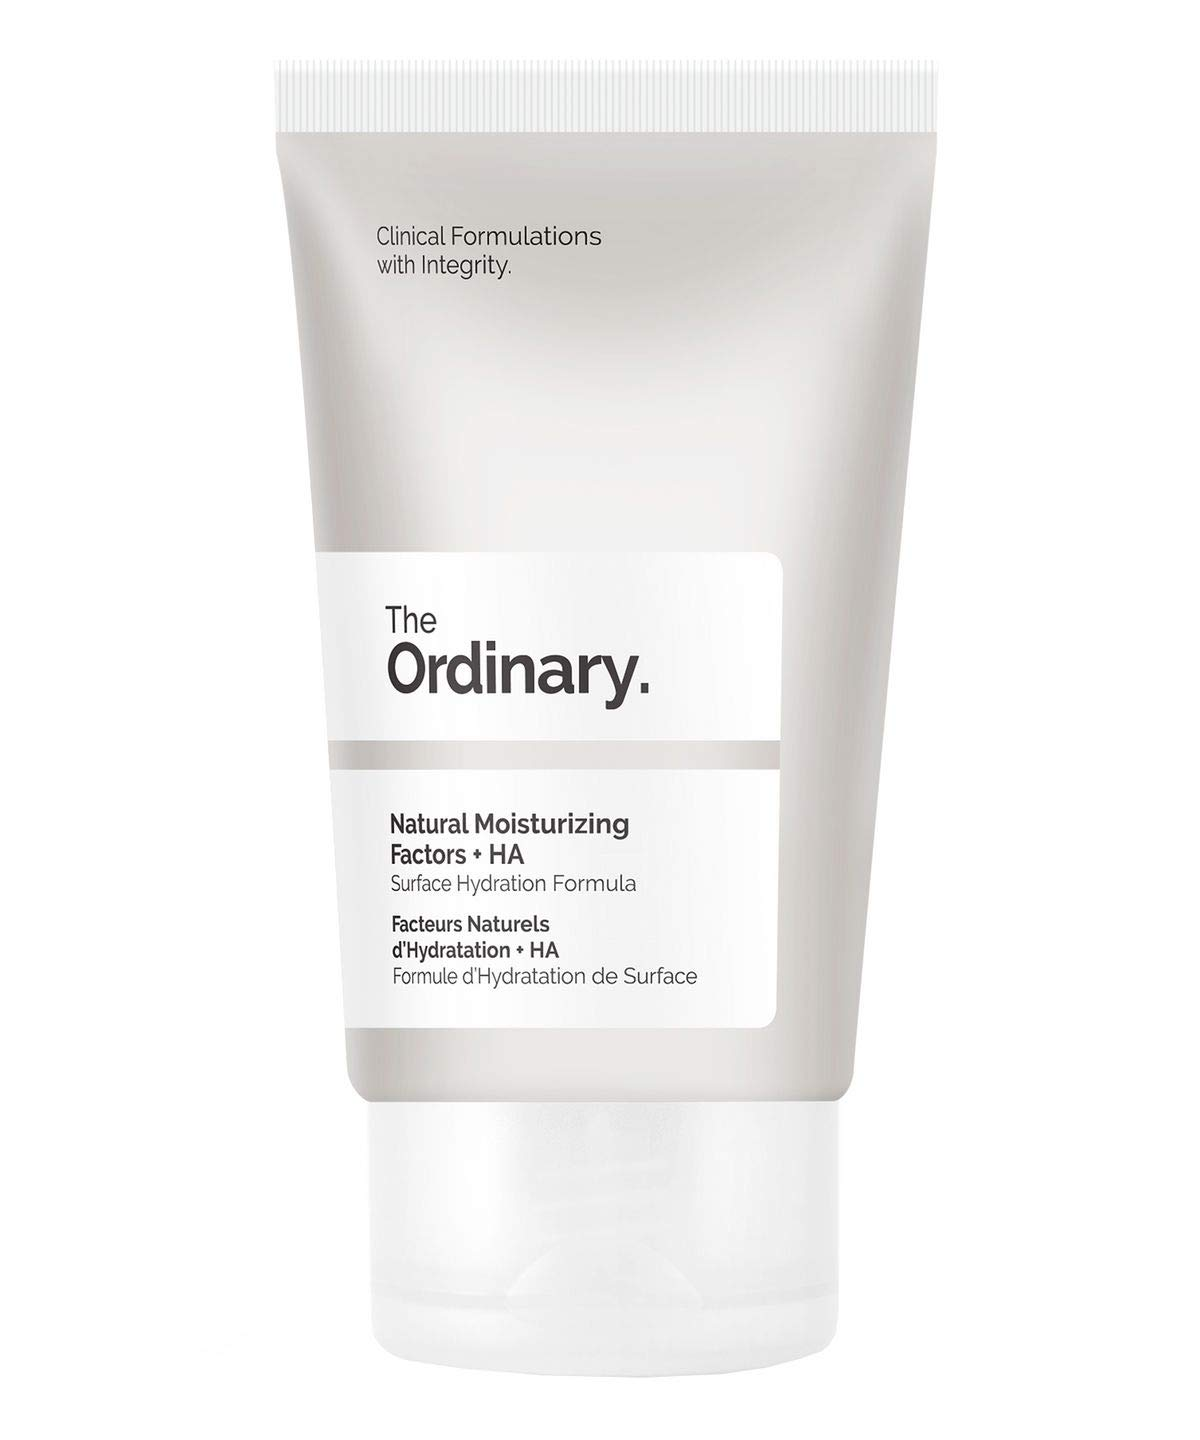 Morningkoffee.com ~ The Ordinary Natural Moisturizing Factors + HA ~Best Skincare Products Under $15